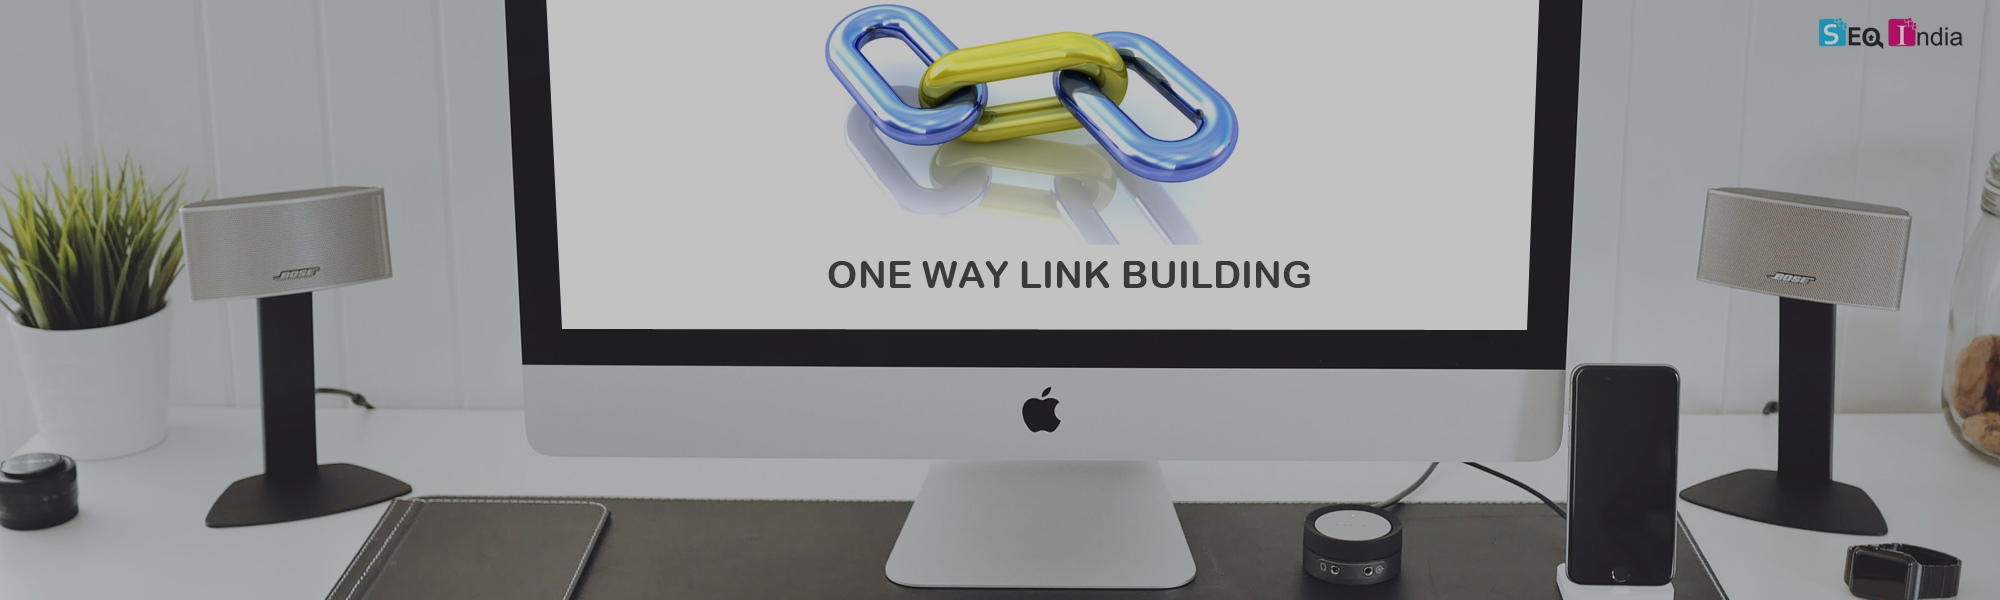 One Way Link Building